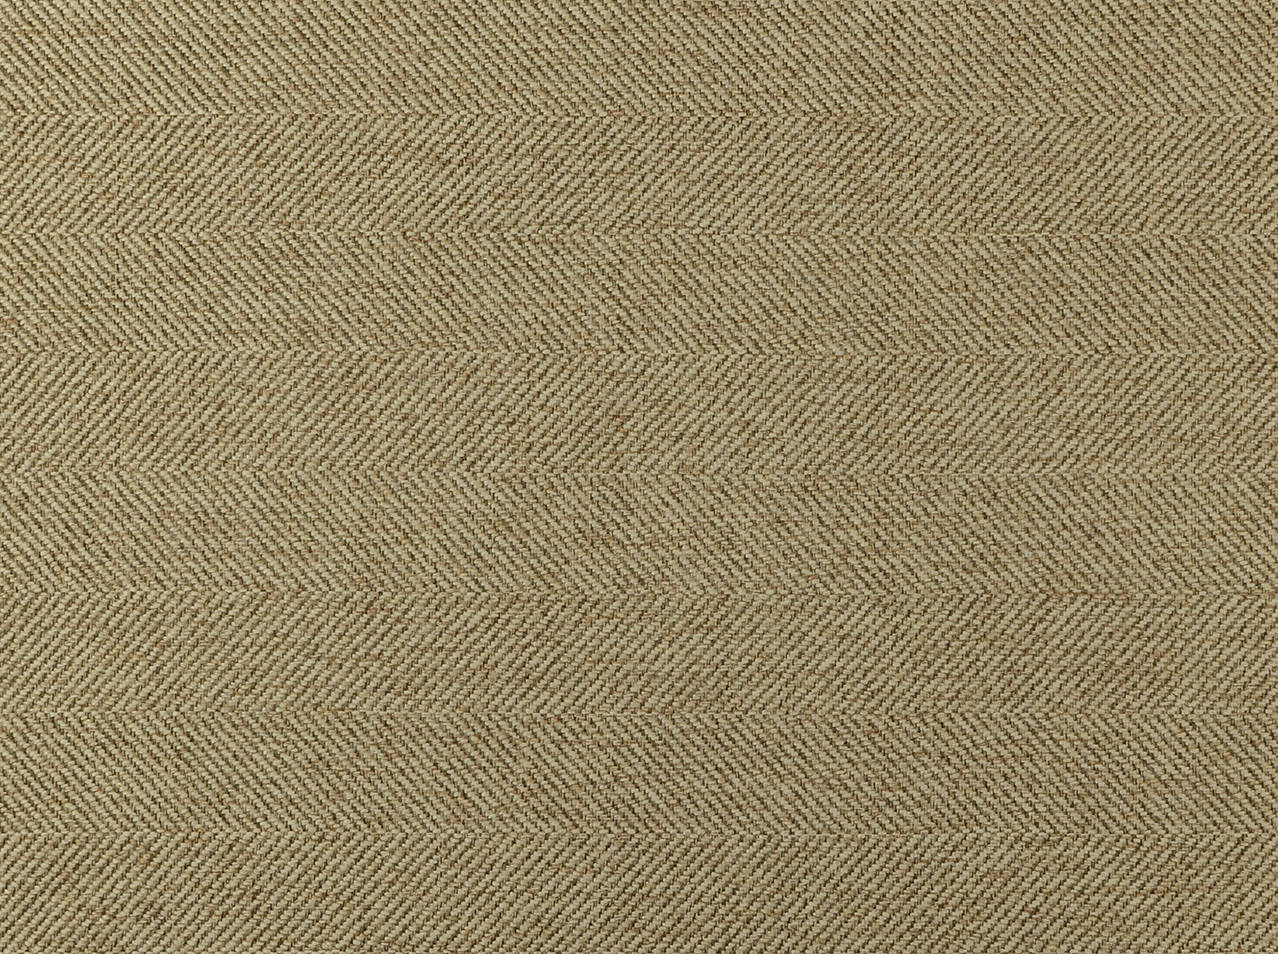 Covington Solids%20and%20Textures Commodore